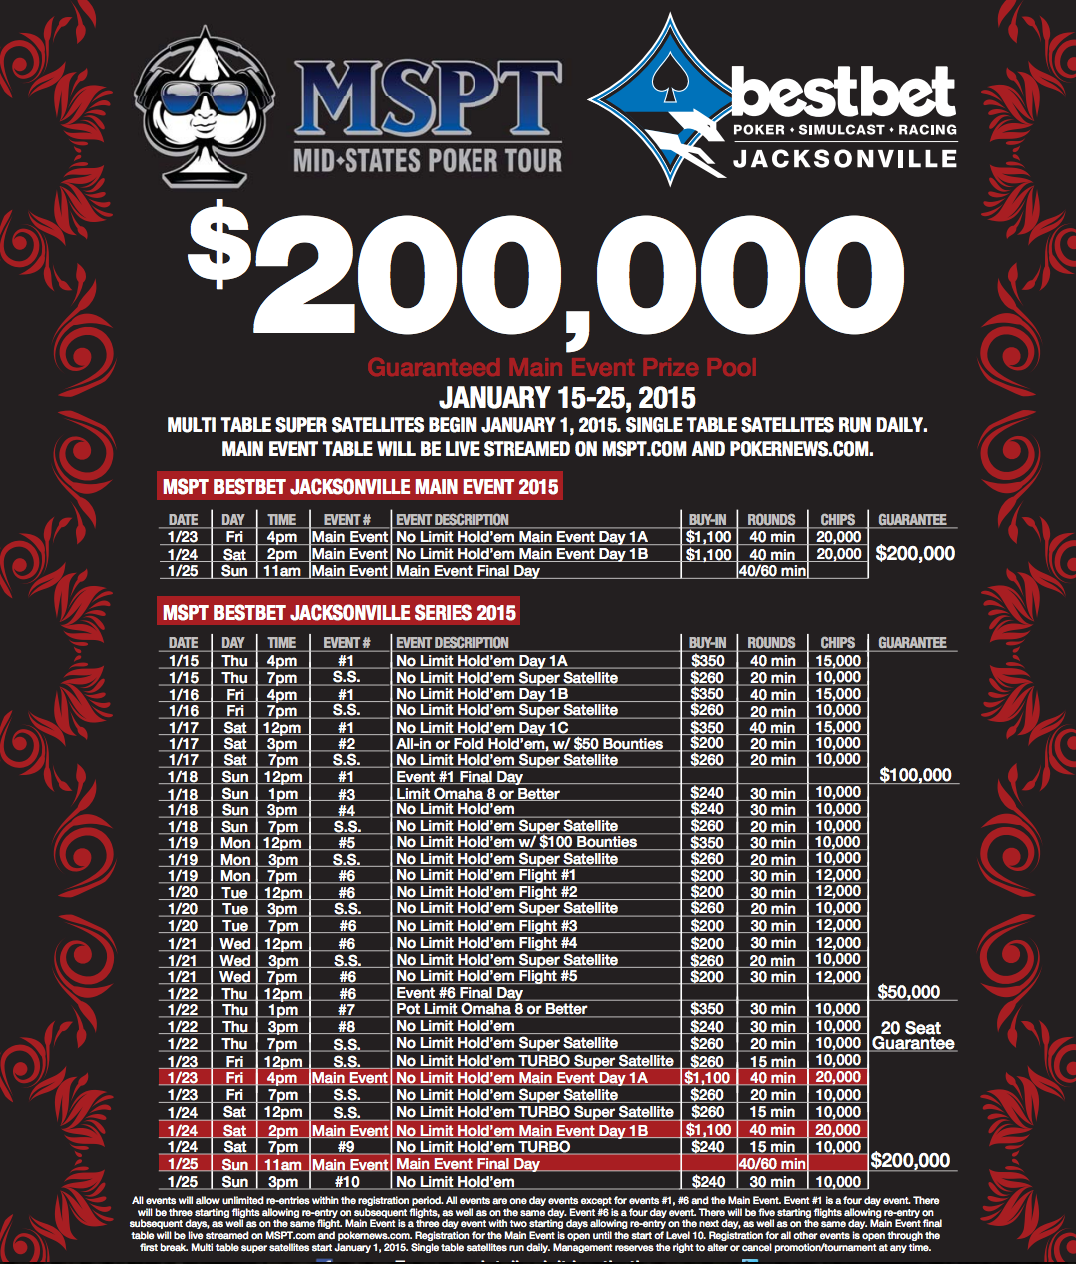 Season 6 of MSPT Kicks Off January 15 at BestBet Jacksonville with 0K Guarantee 101